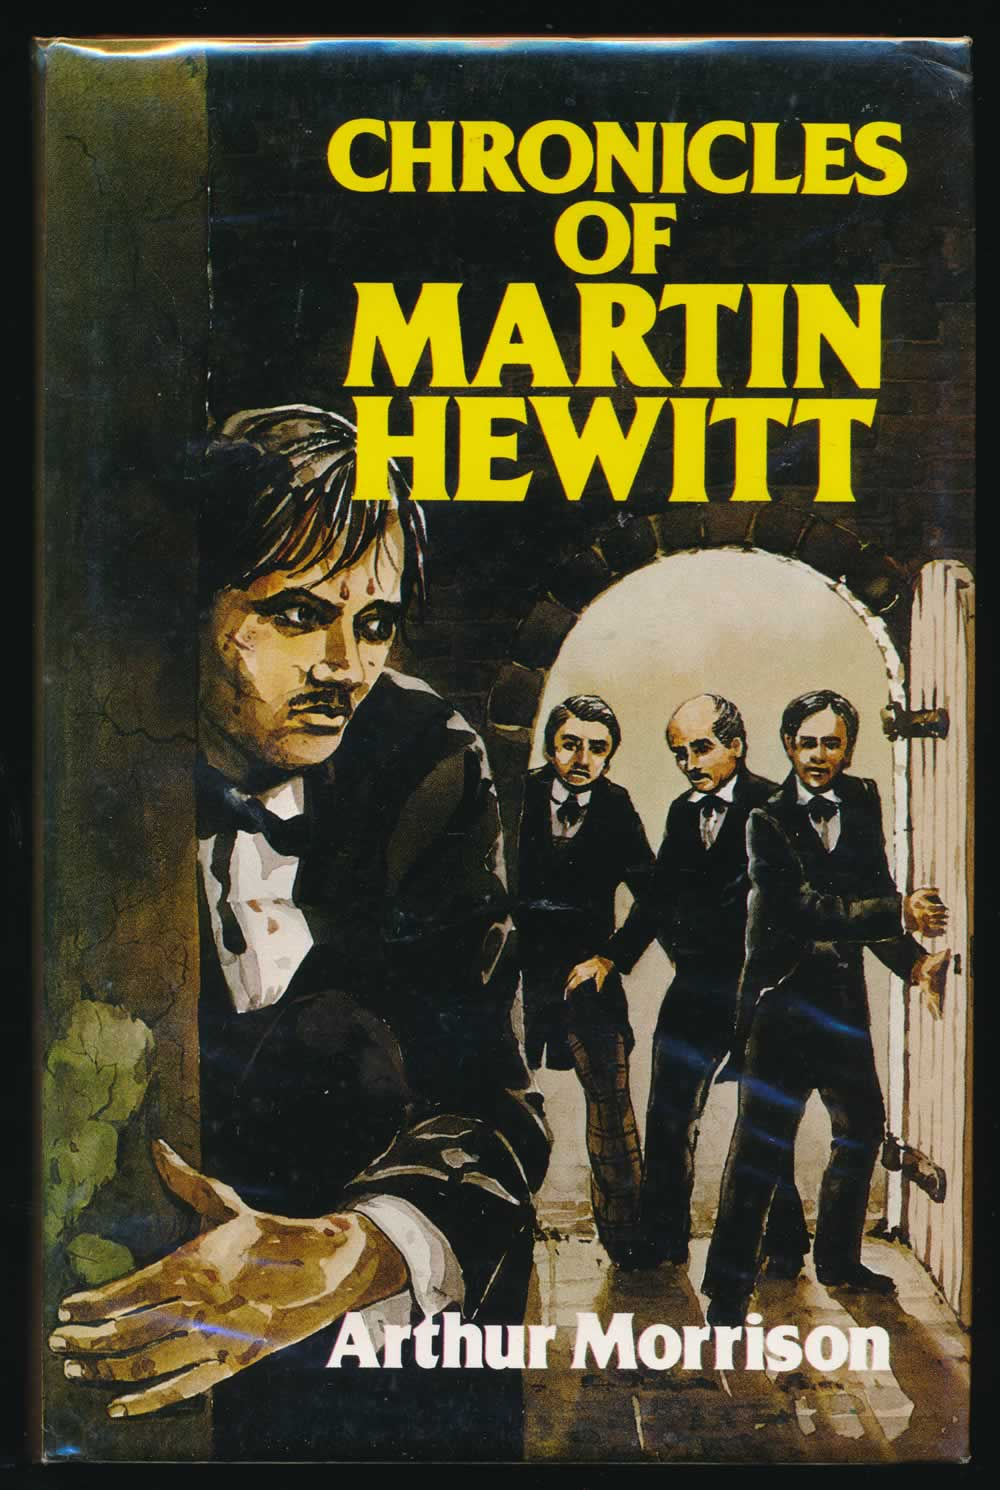 Chronicles of Martin Hewitt